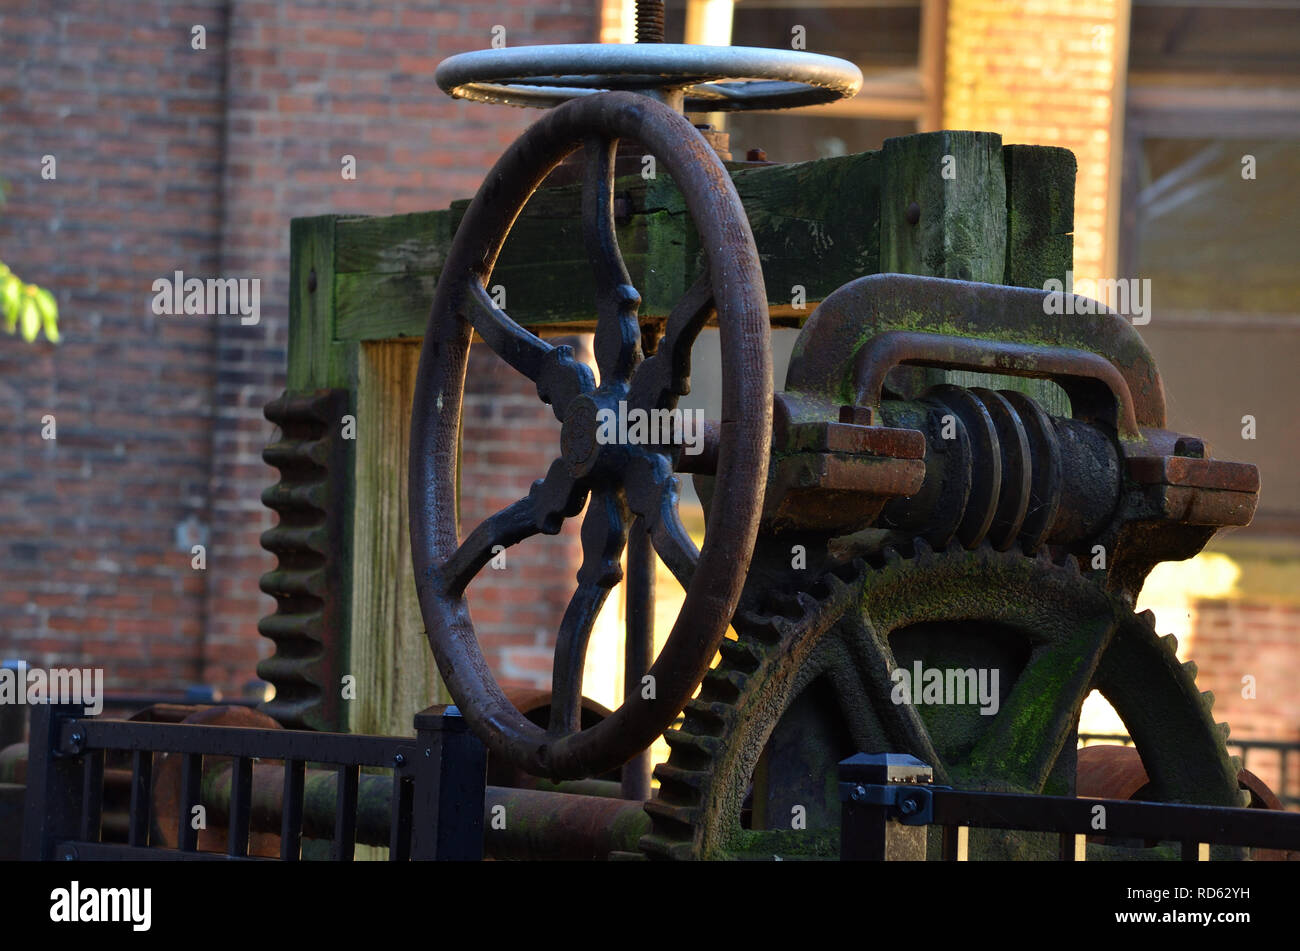 Vintage Industrial Water Control Dam Gate Valve from a Woolen Mill - Stock Image